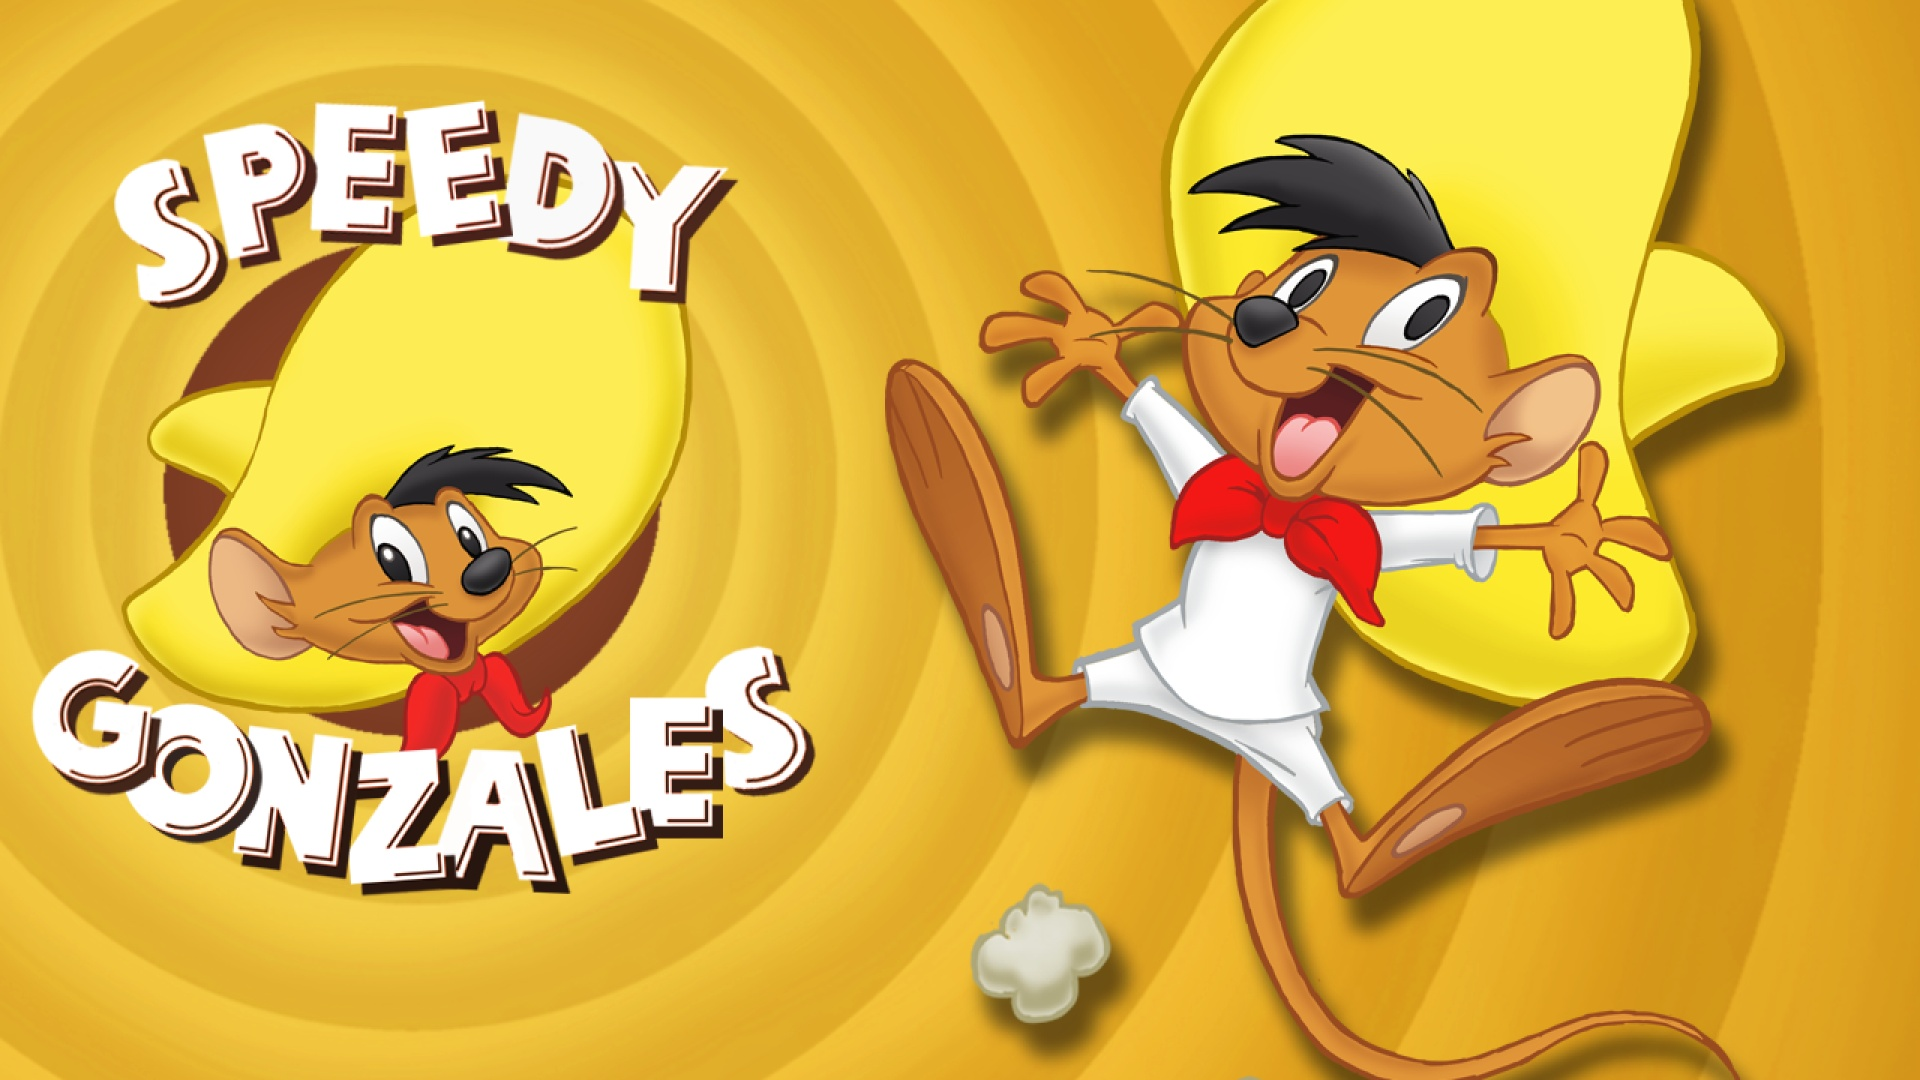 1920x1080 Speedy Gonzales One